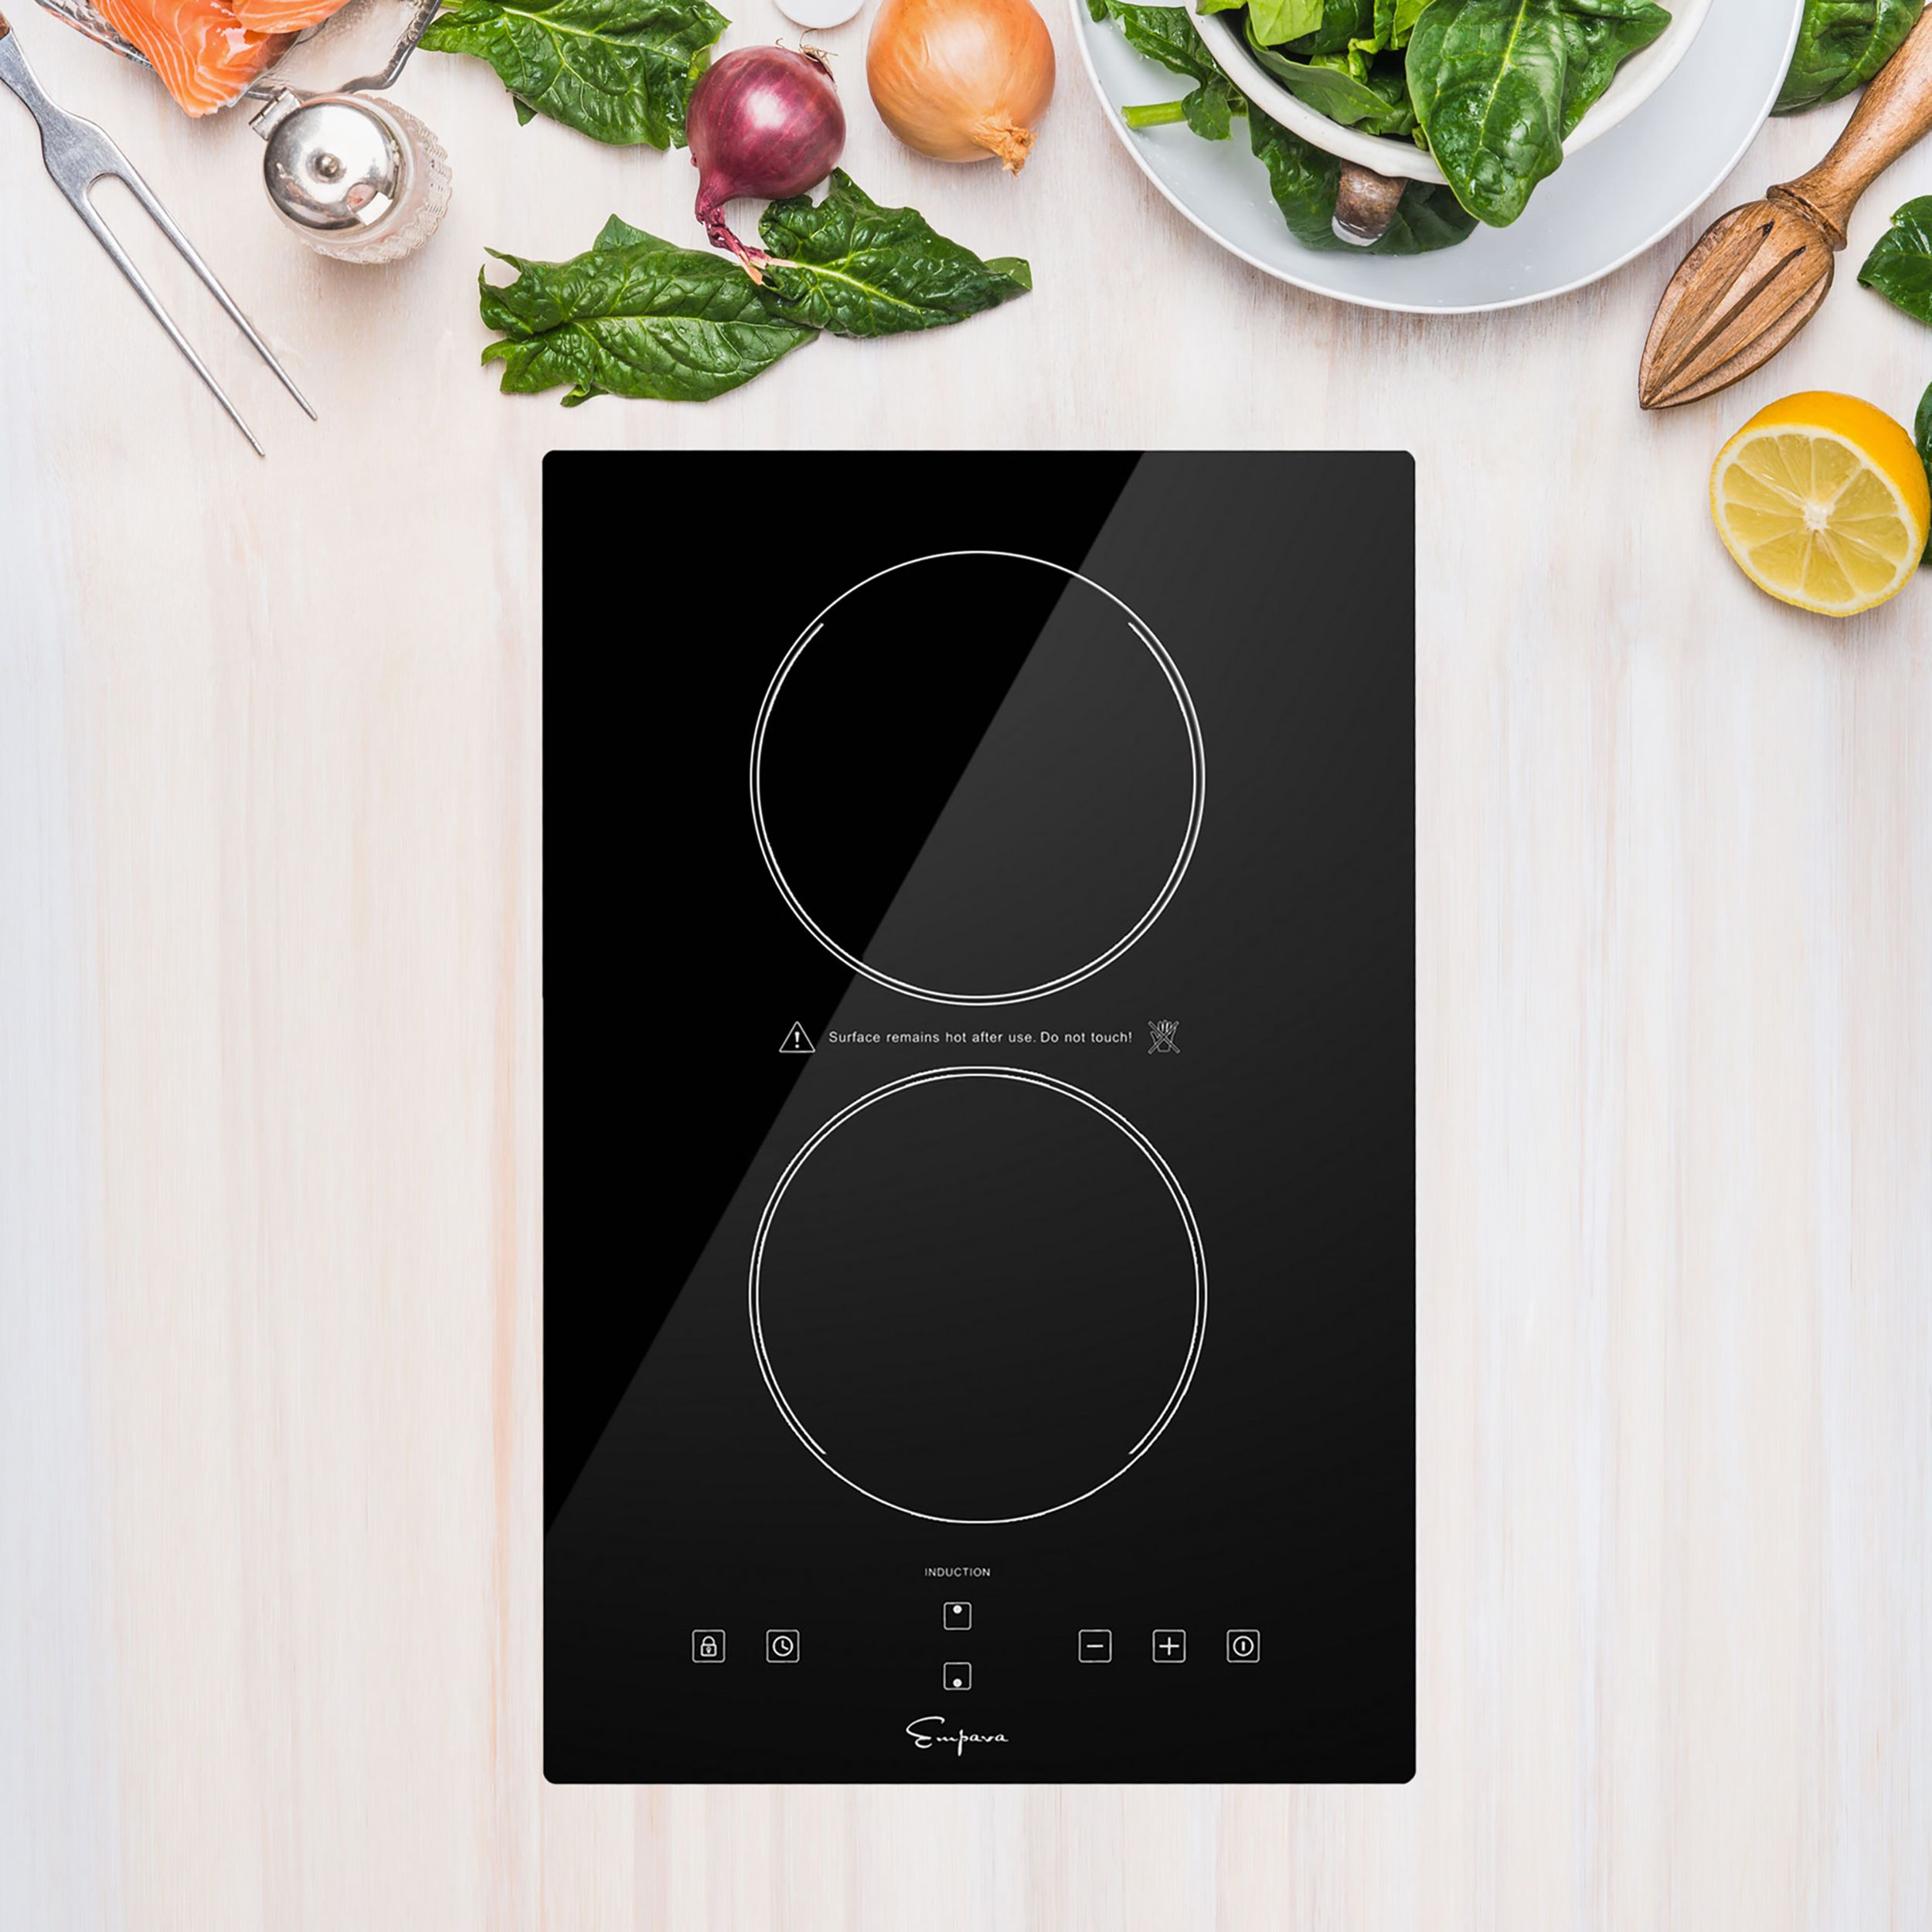 Pin On Induction Cooktops Ideas